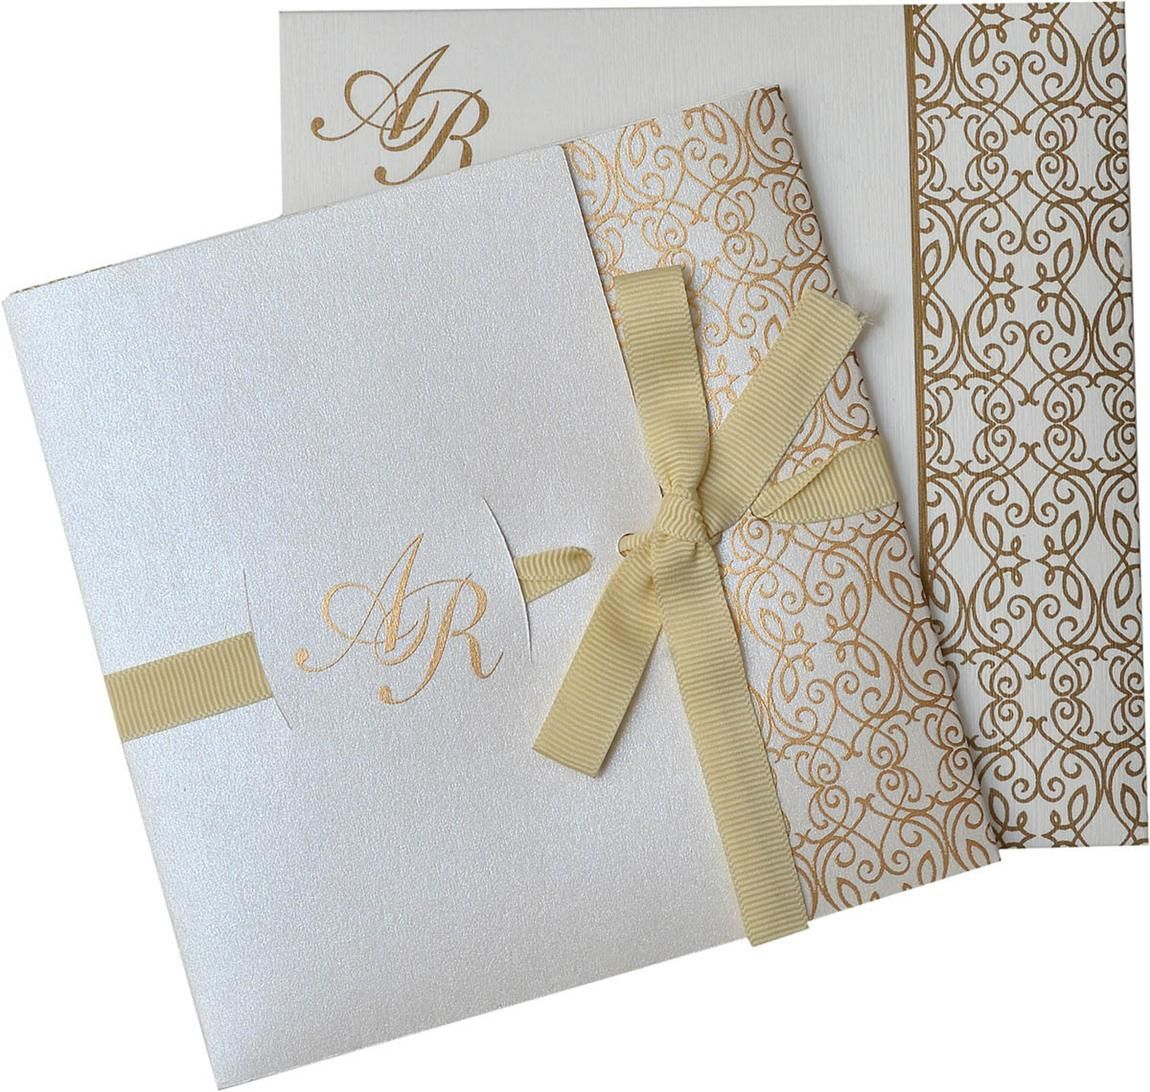 indian wedding hindu invitations%0A US      Royal and Classic invitation made on Cream shimmer finish sheet  with Golden